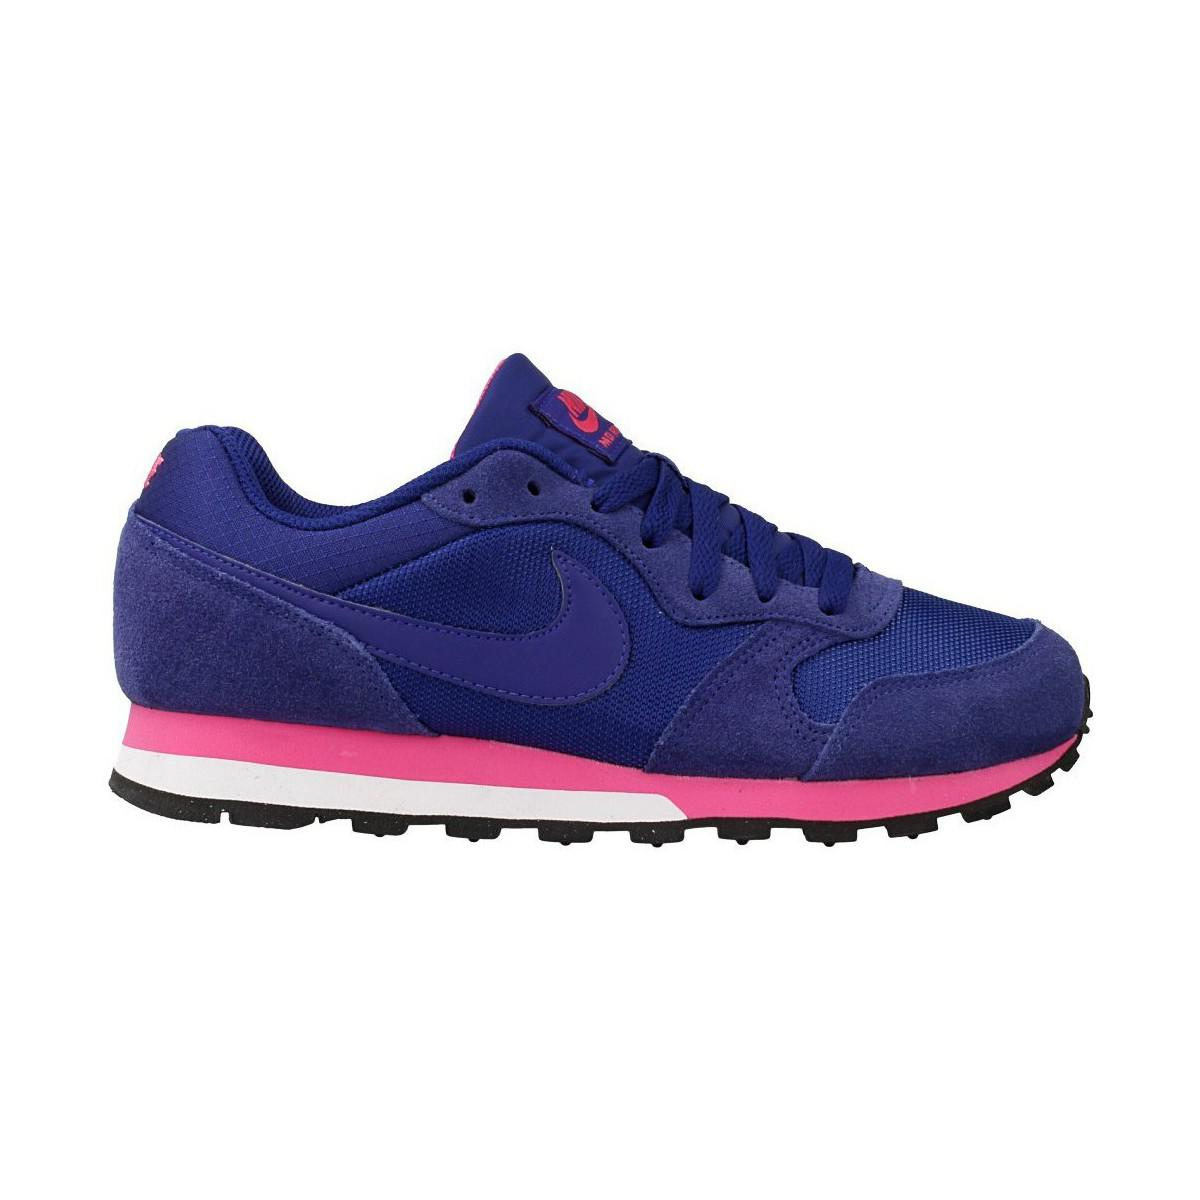 buy online 540cd 7bc21 Nike - Md Runner Women s Shoes (trainers) In Pink - Lyst. View fullscreen